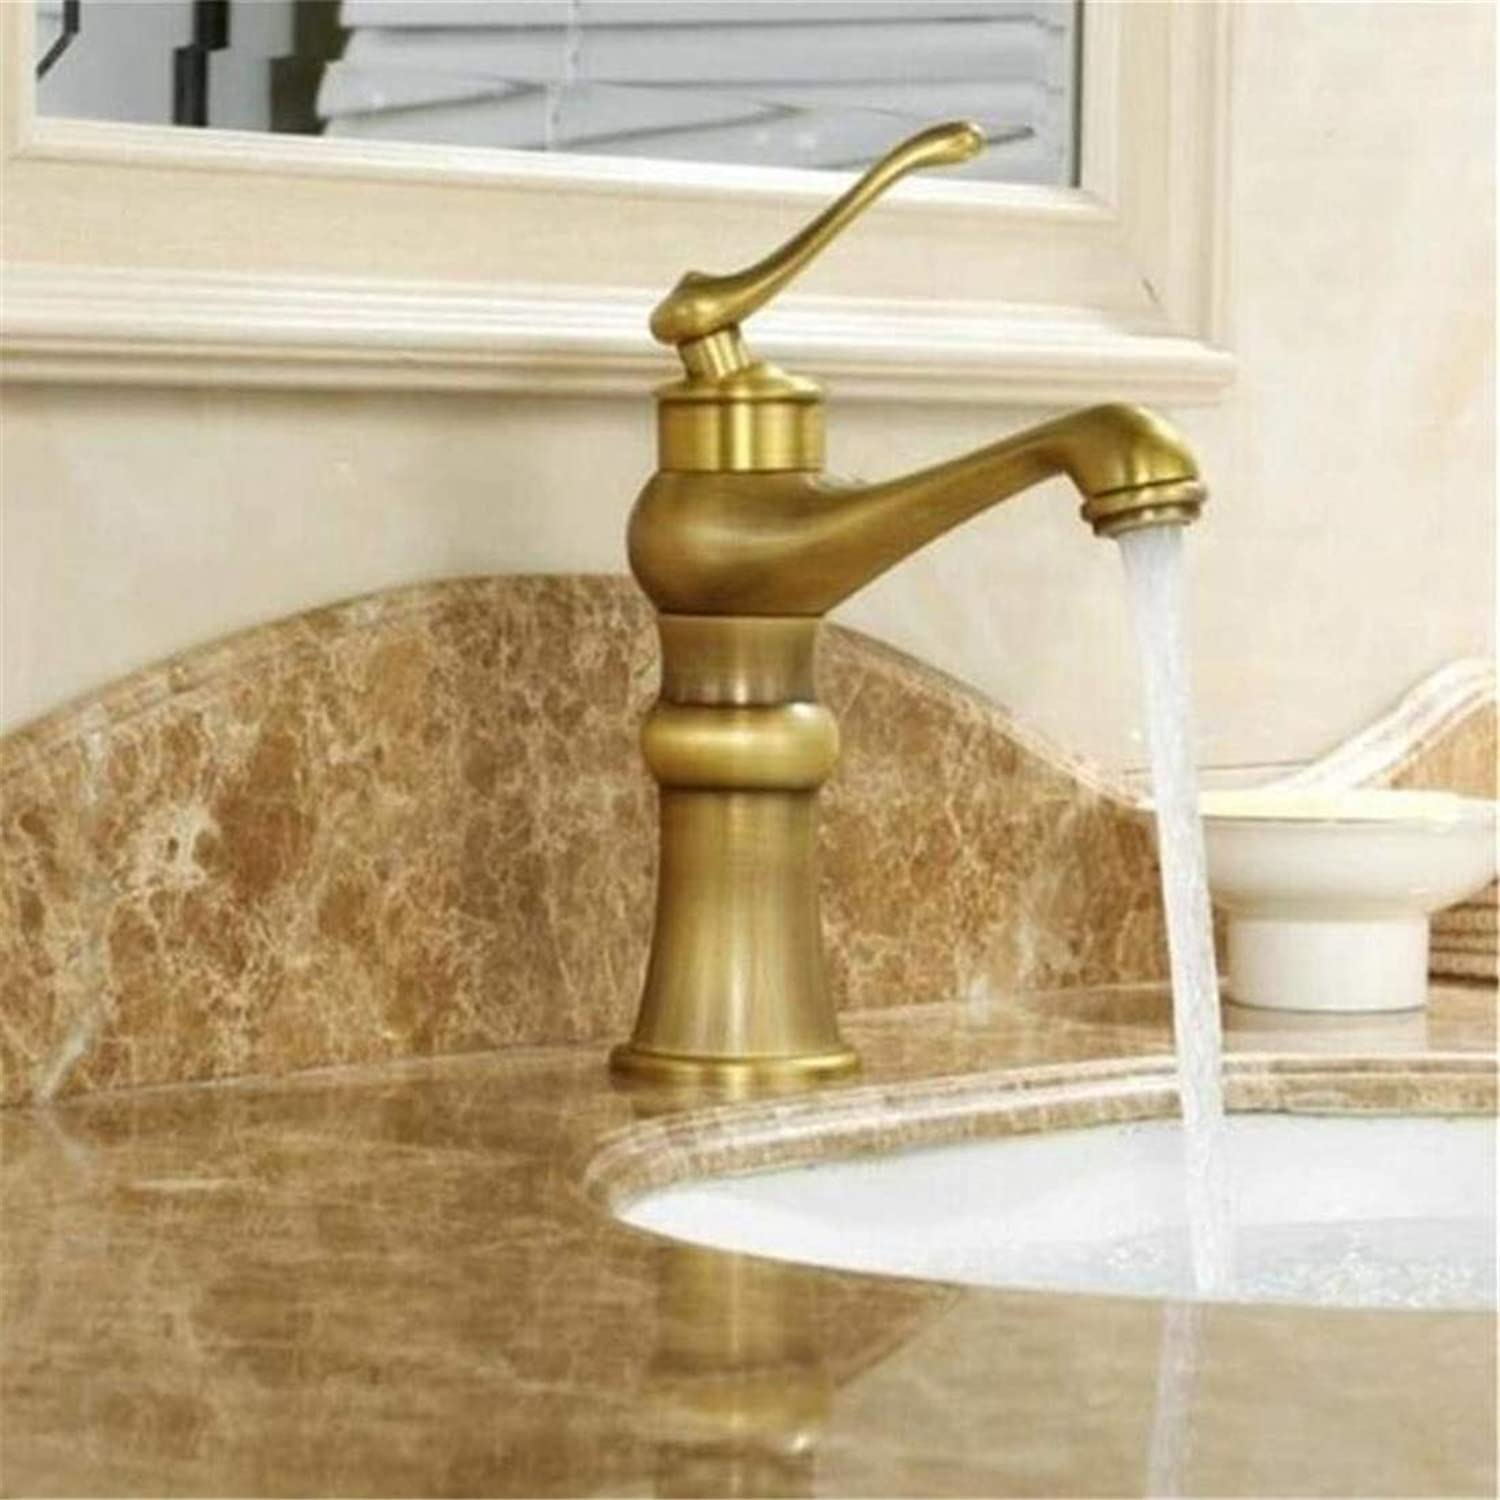 Modern High Quality Vintage Faucet Single Handle Hot Cold Mixer Water Tap Black